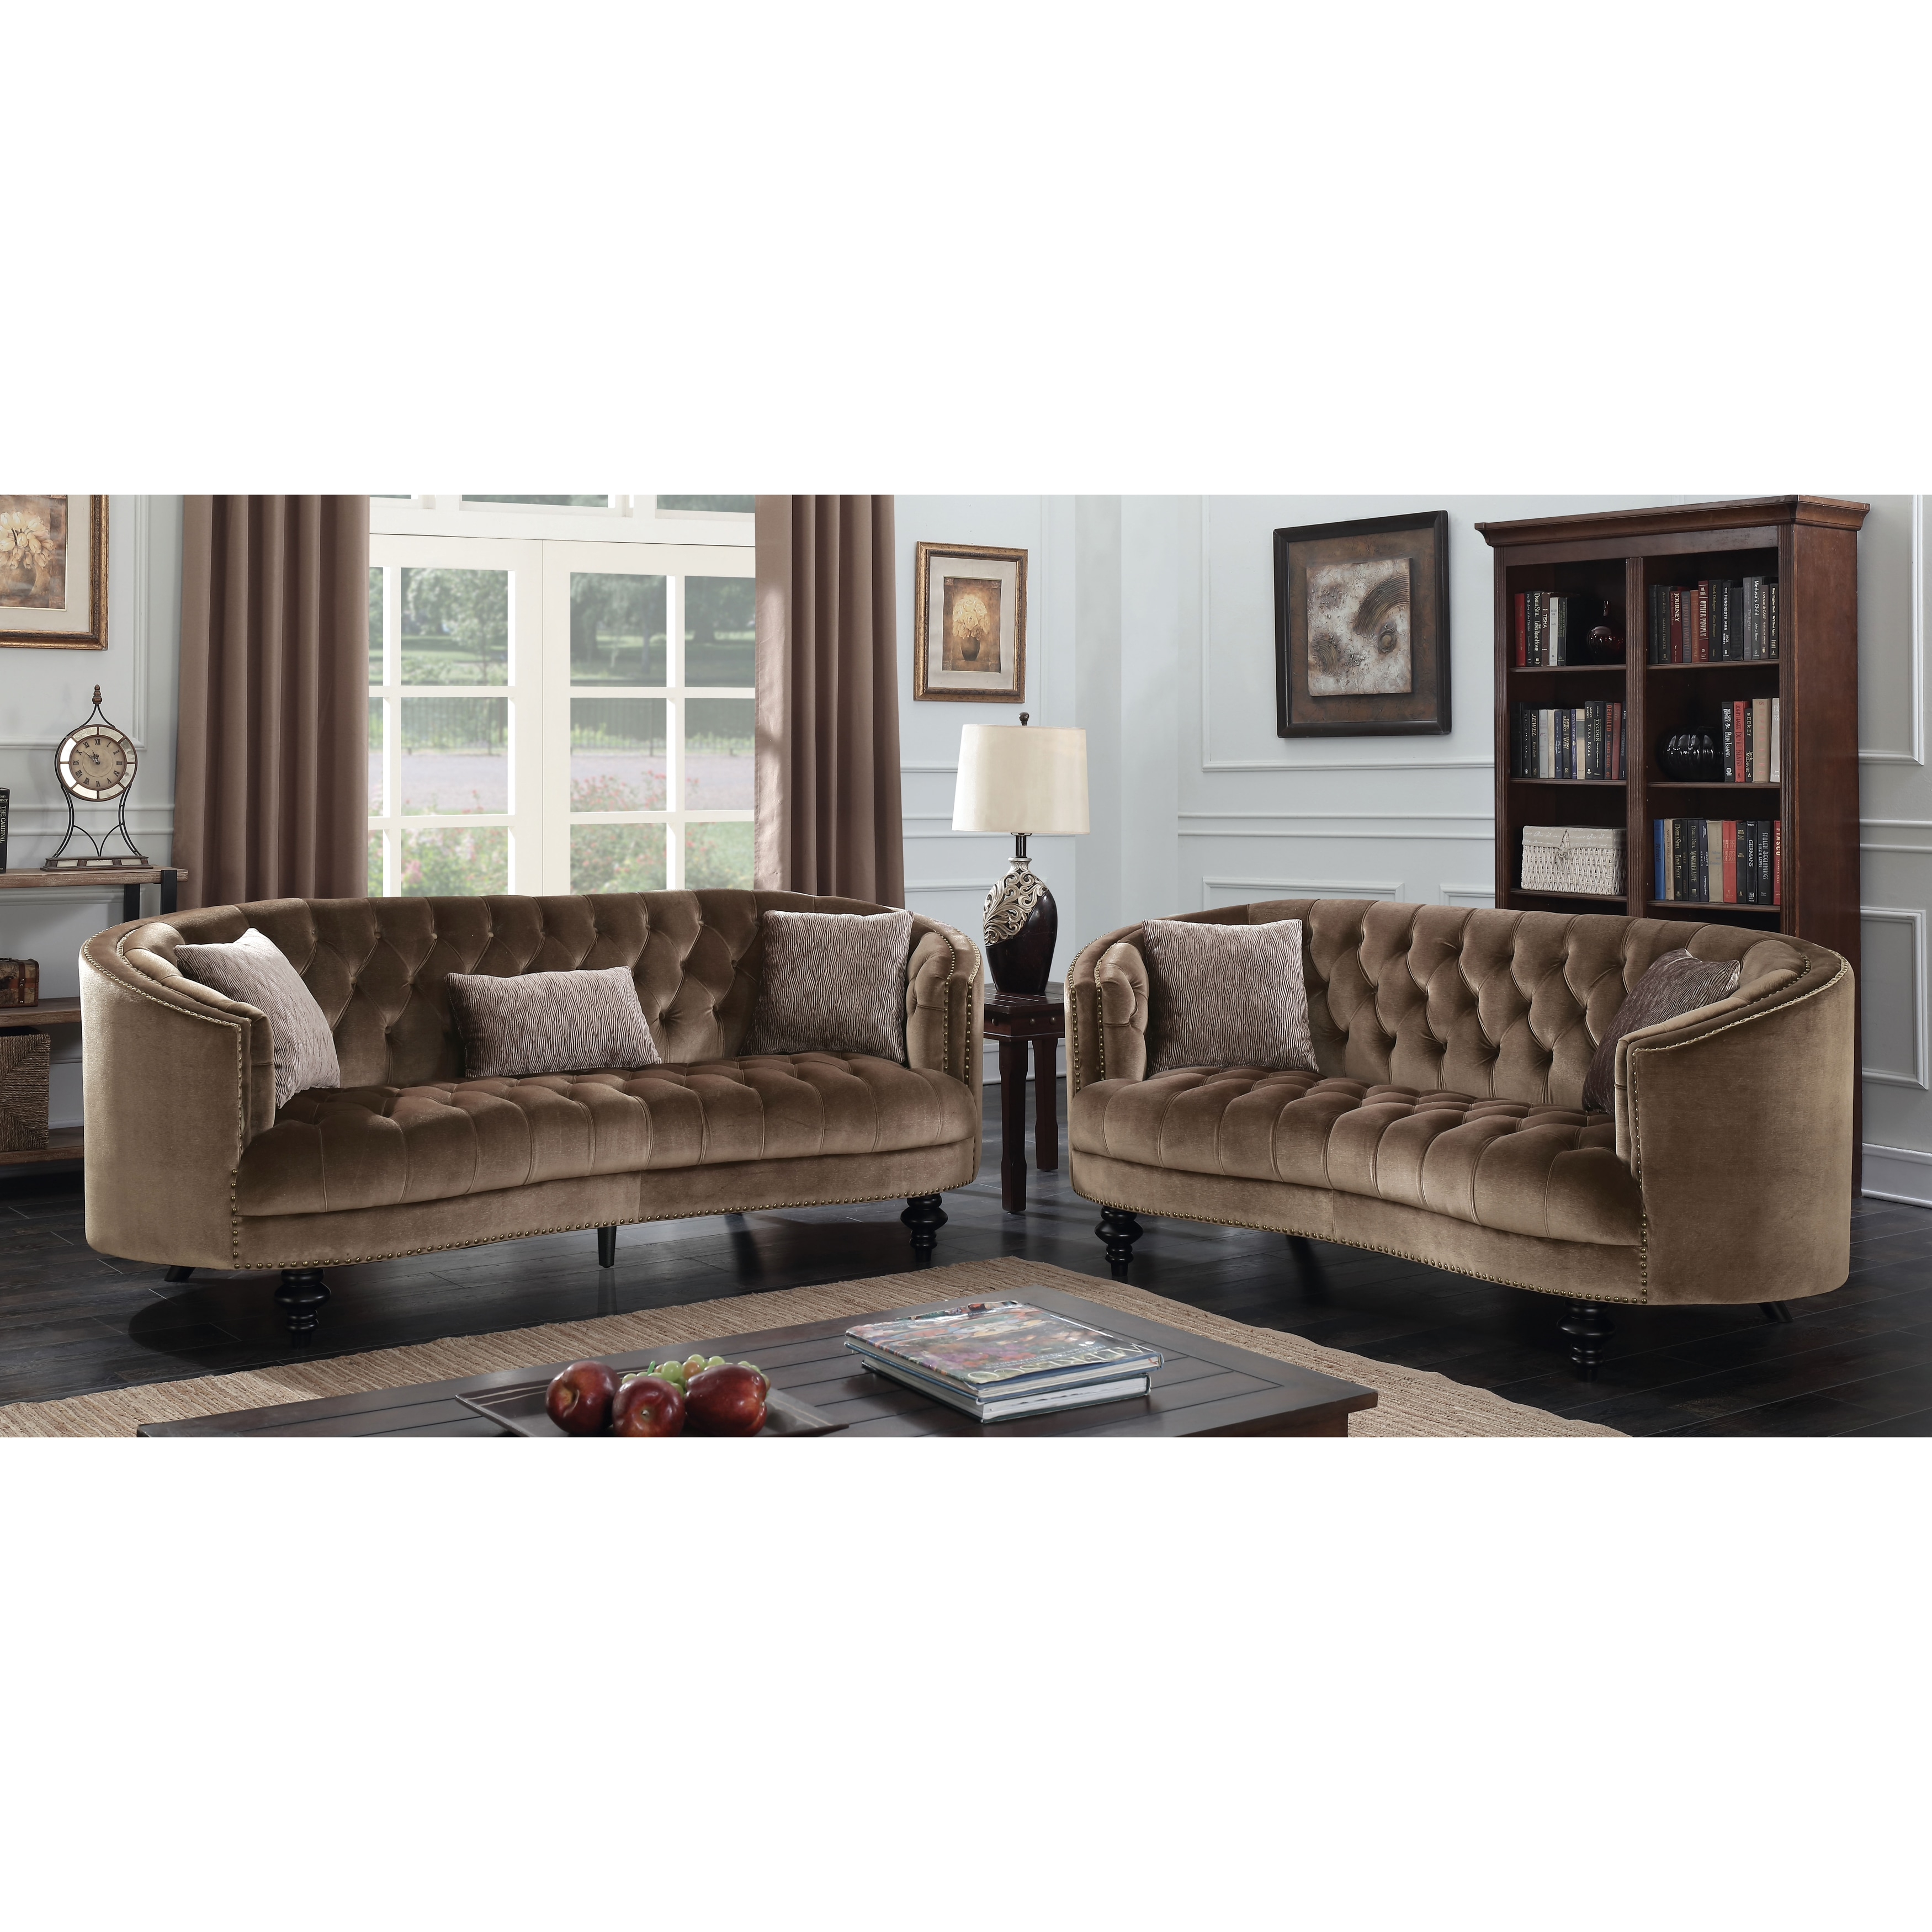 Merveilleux Shop Furniture Of America Sevi Glam 3 Piece Tufted Flannelette Sofa Set    On Sale   Free Shipping Today   Overstock.com   17833143